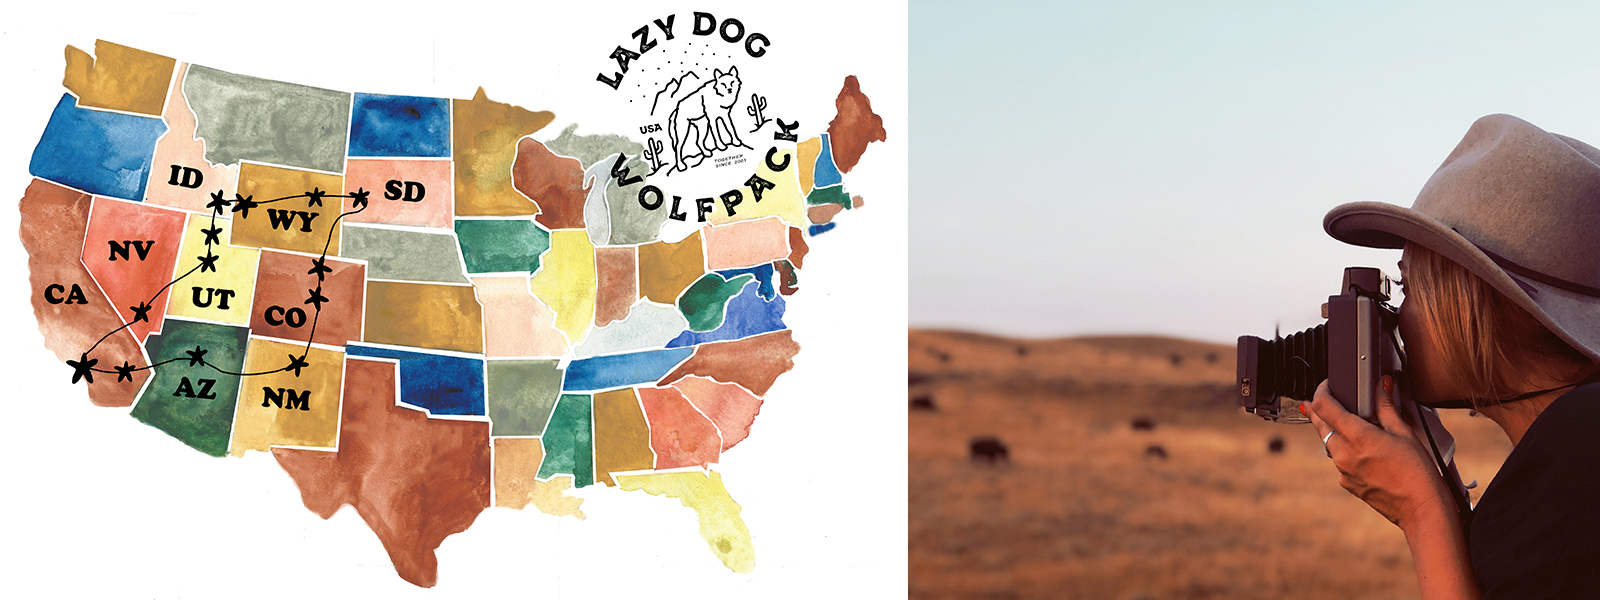 Map of all the stops on Lazy Dog's road trip. Taking photos out in a field.